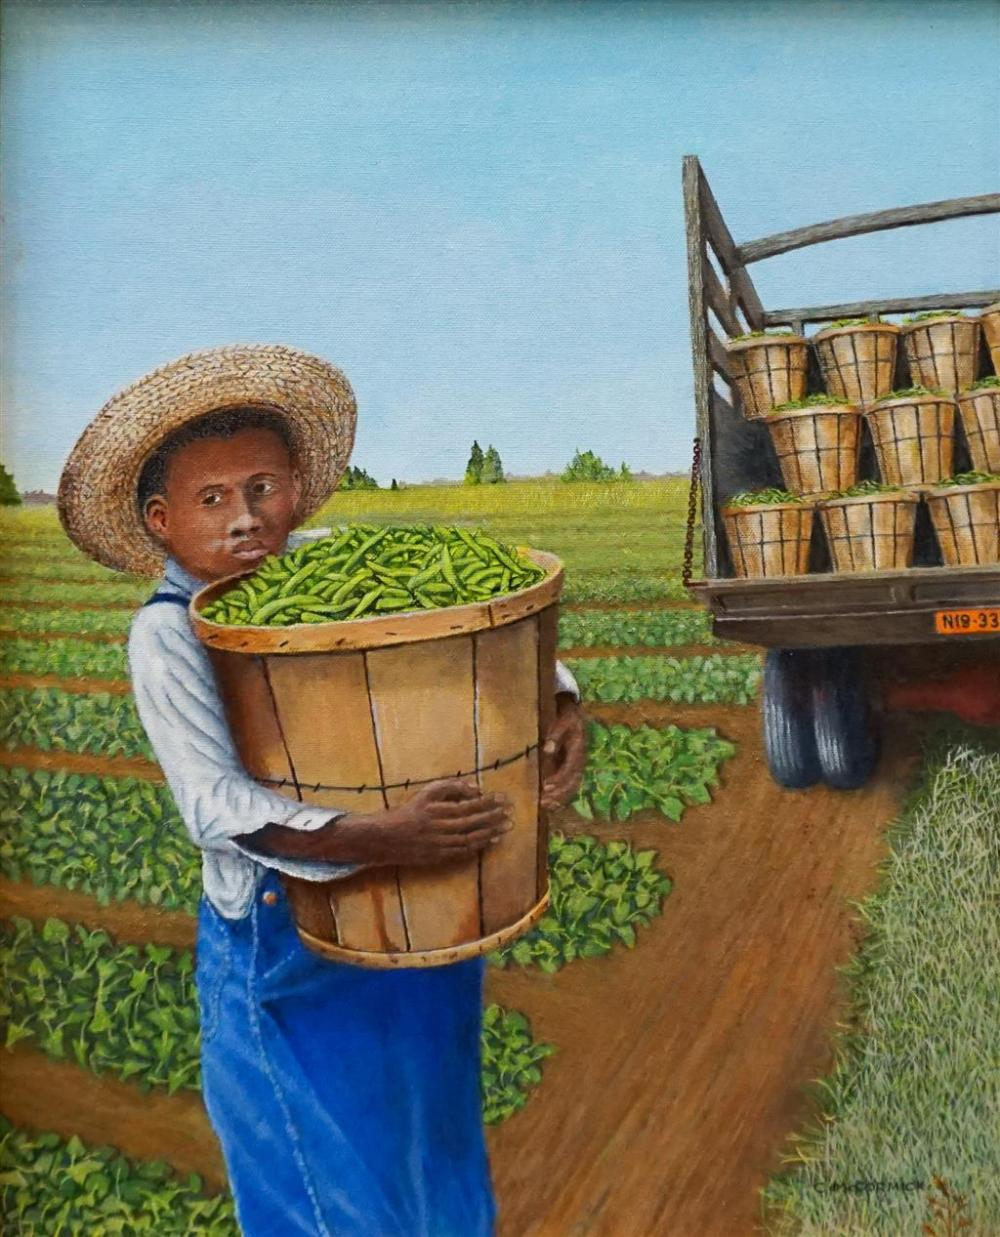 C P McCormick, Gathering the Harvest, Oil on Canvas, Frame: 23 x 18-7/8 in